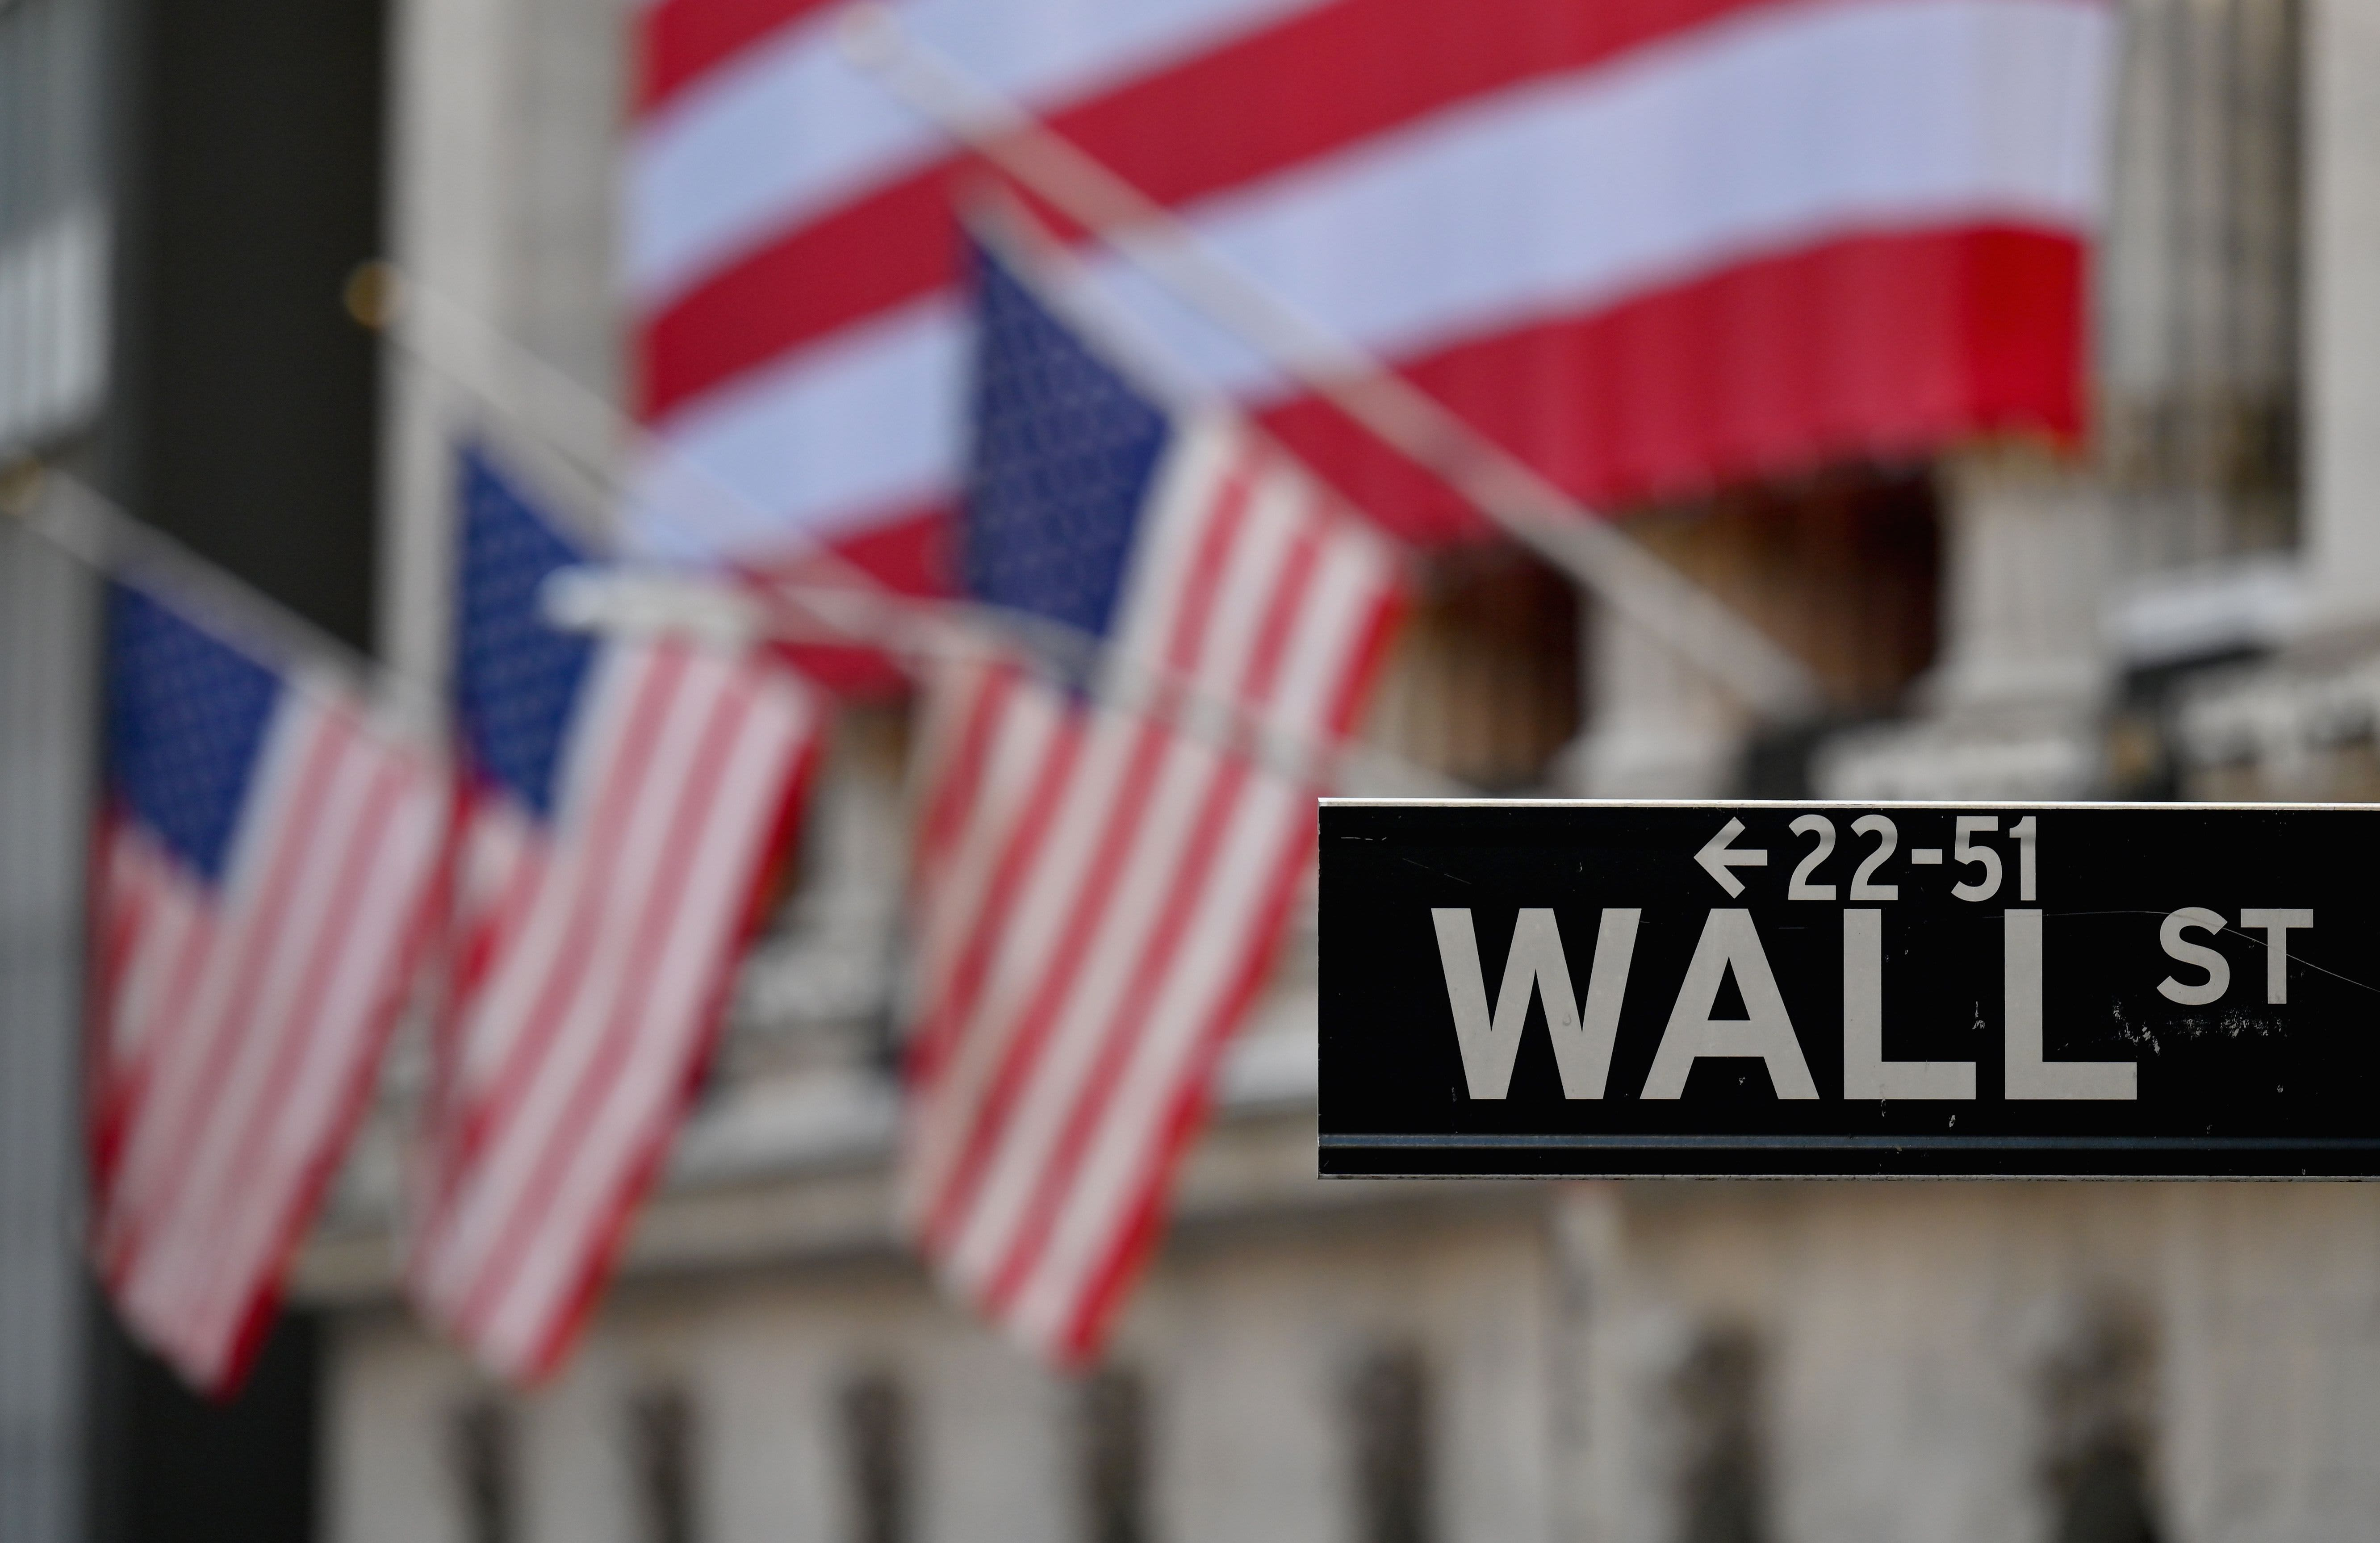 Jim Cramer on How to Approach Growth Stocks After Inflation Worries Shake Up Market – NBC10 Philadelphia